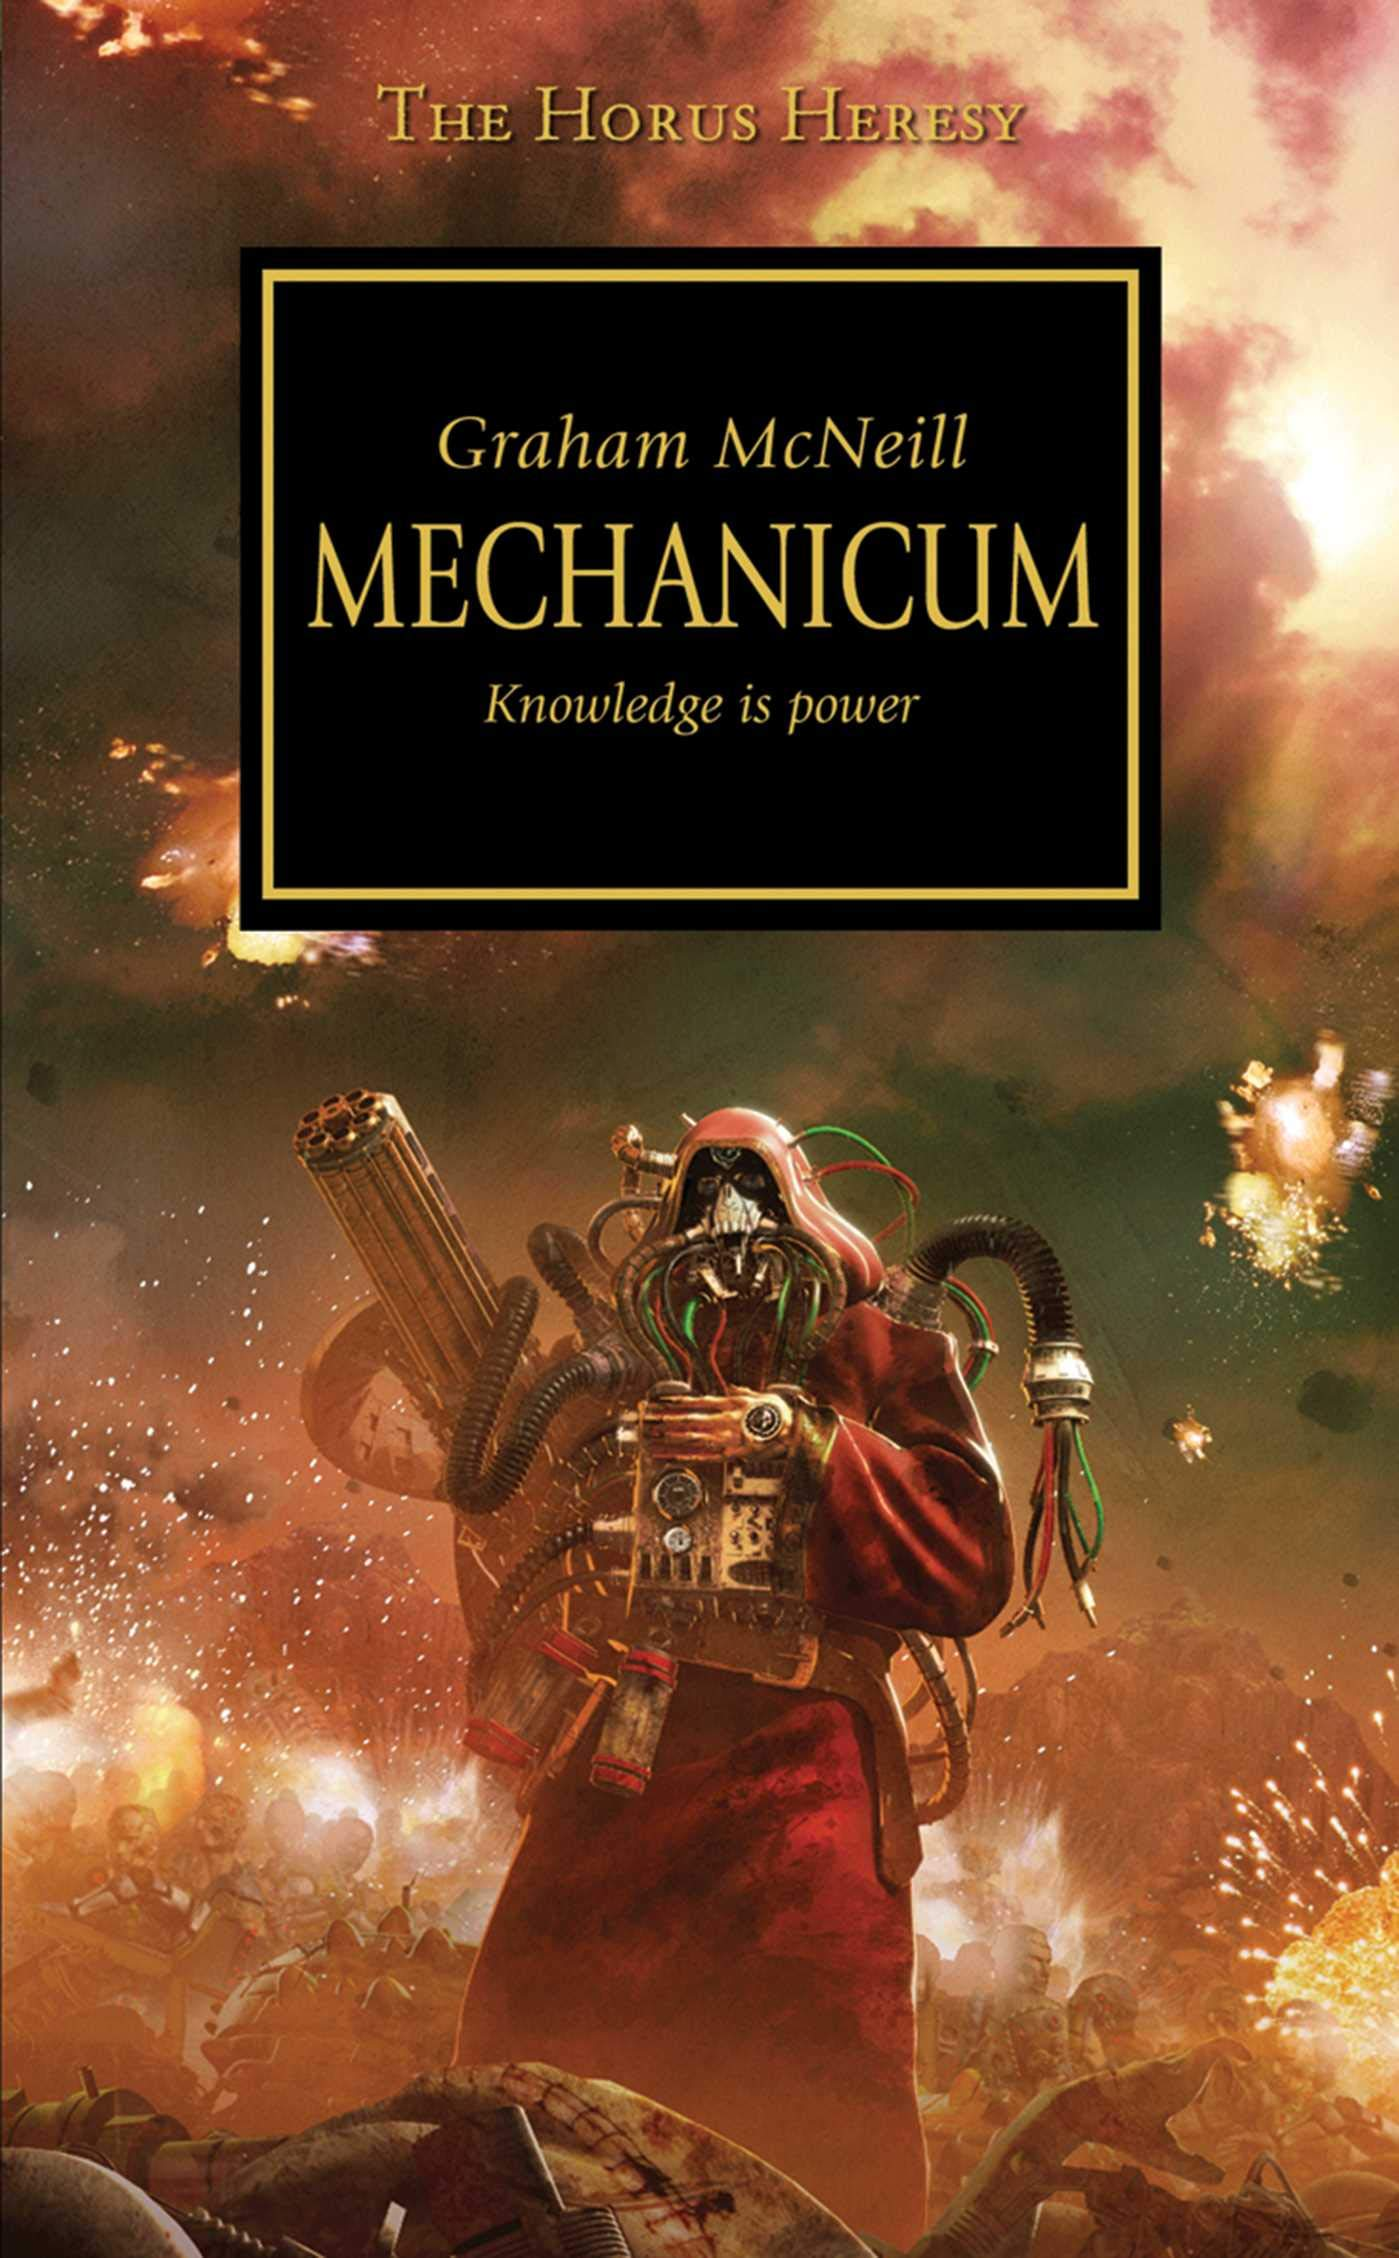 Horus Heresy books